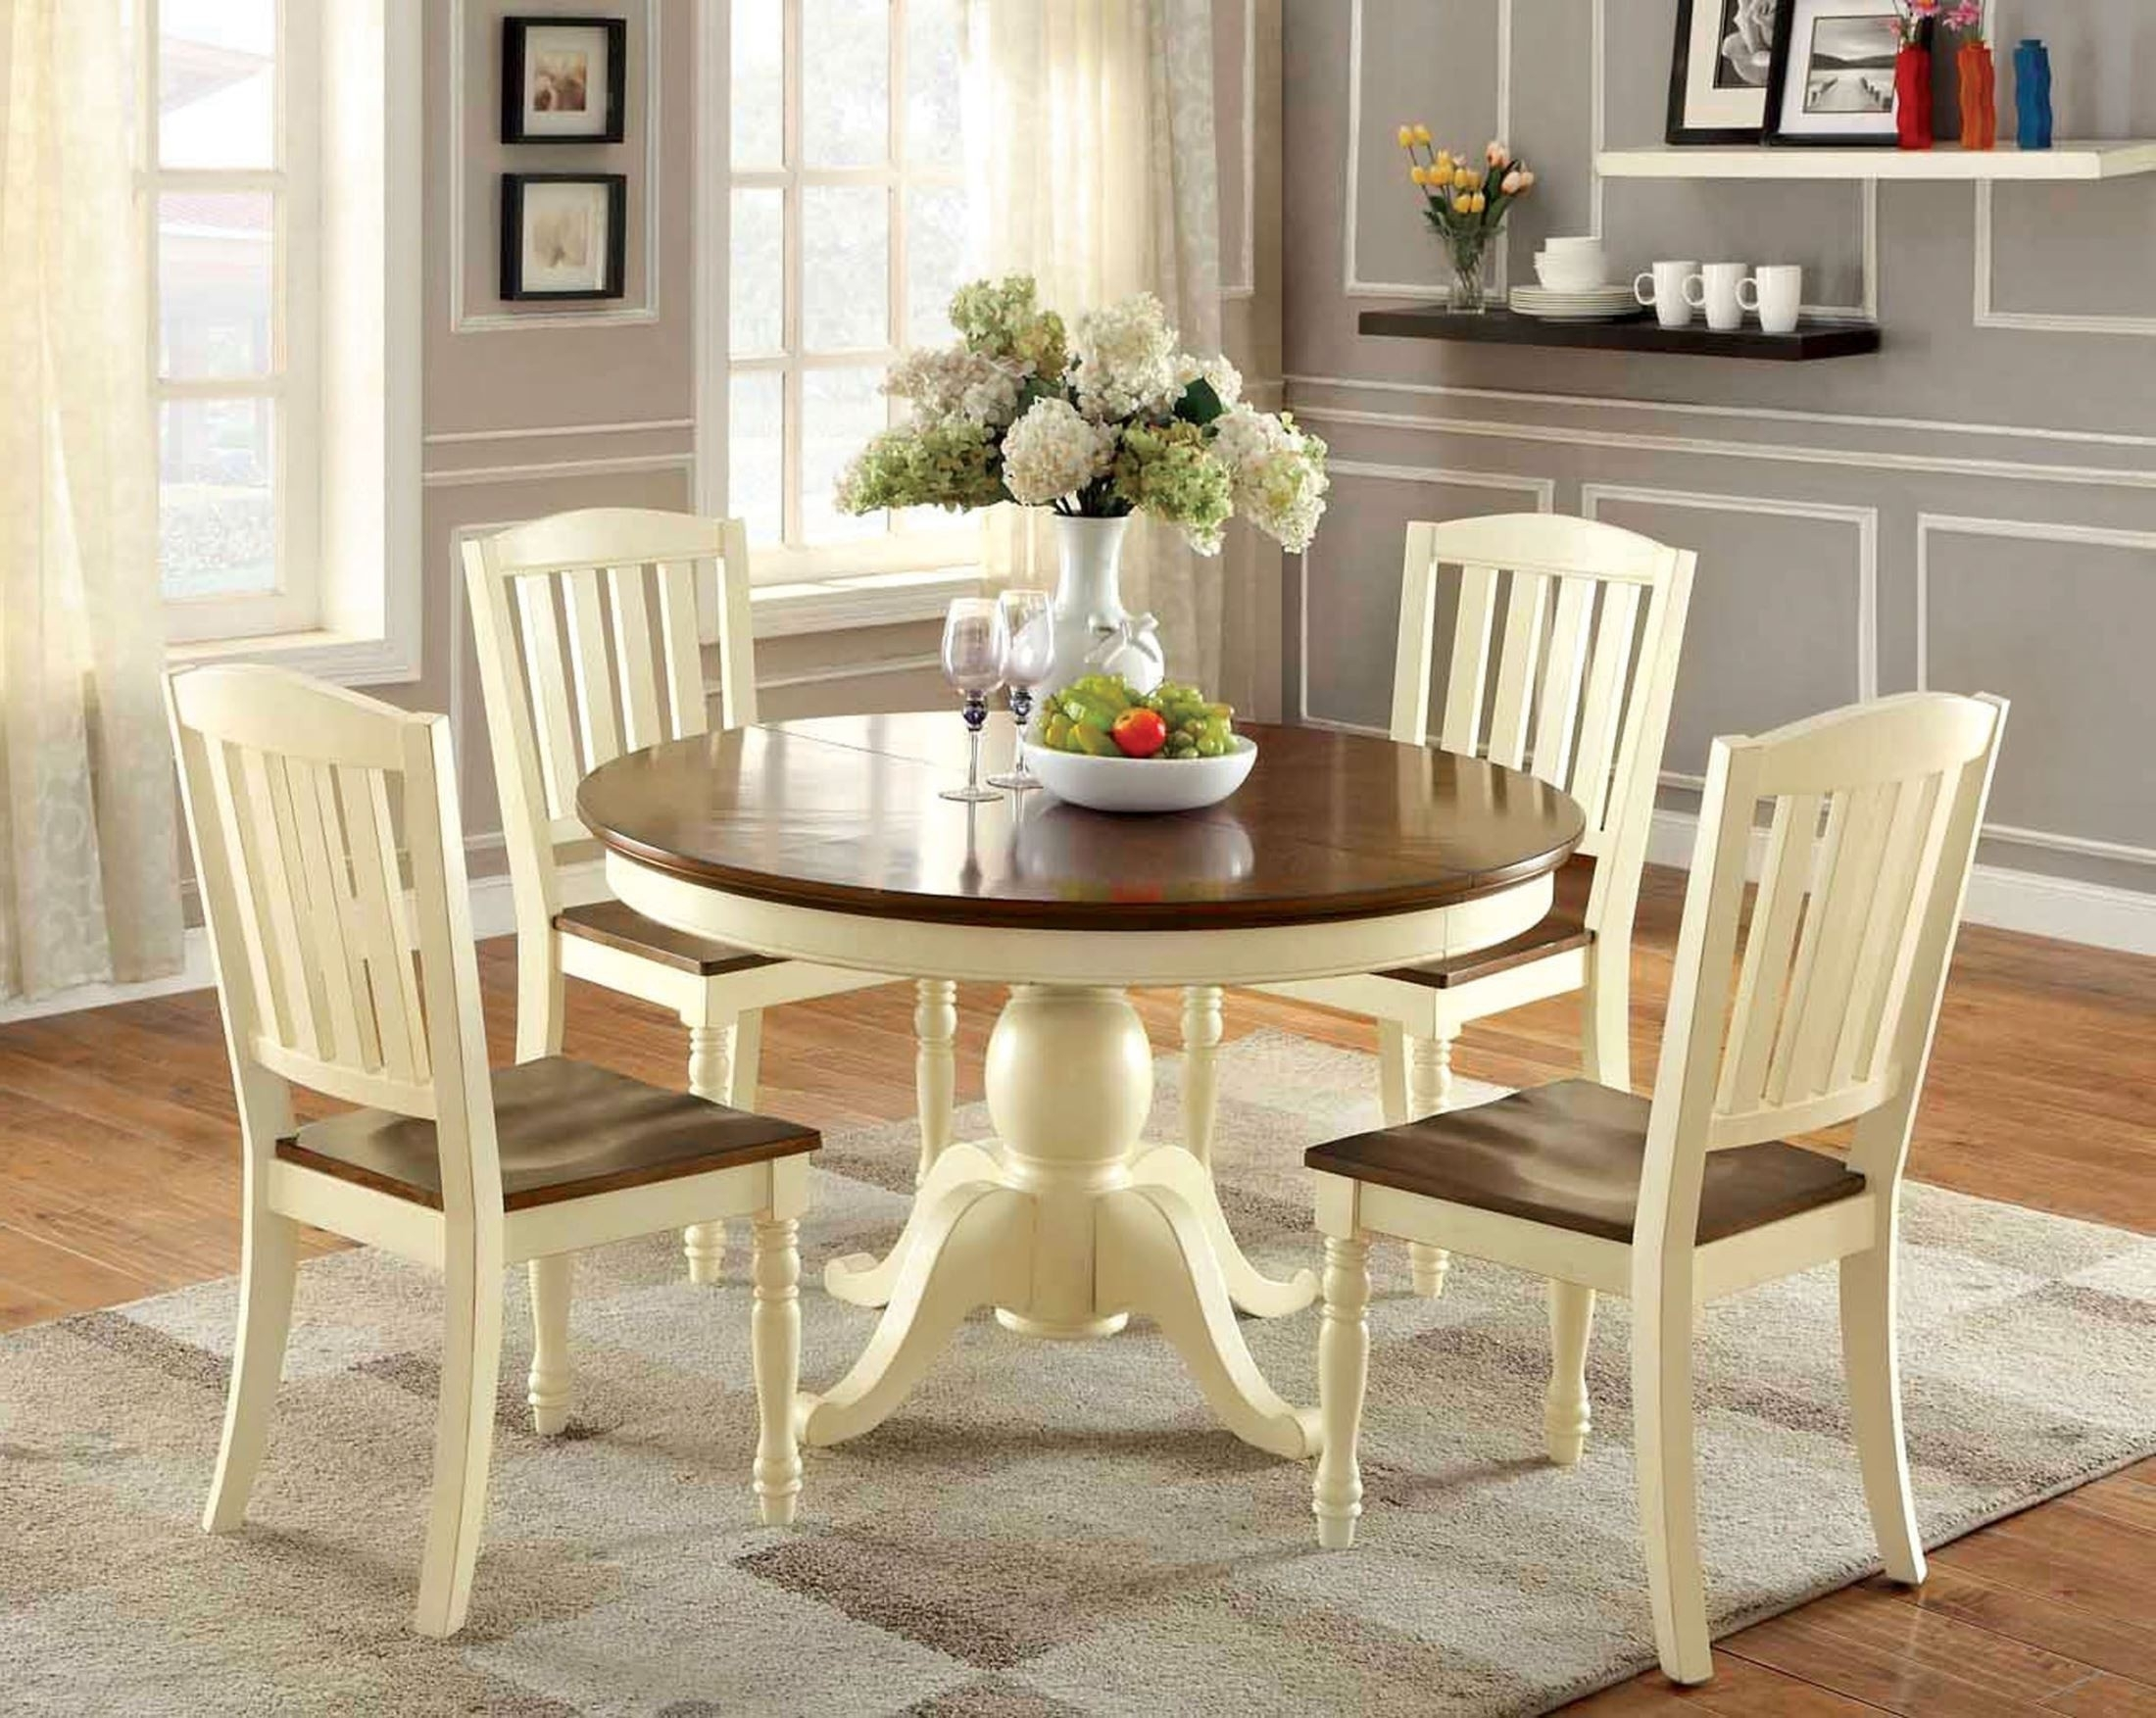 Current Oval Dining Tables For Sale With Antique Oval Dining Tables For Sale Beautiful Art Deco Round (View 11 of 25)